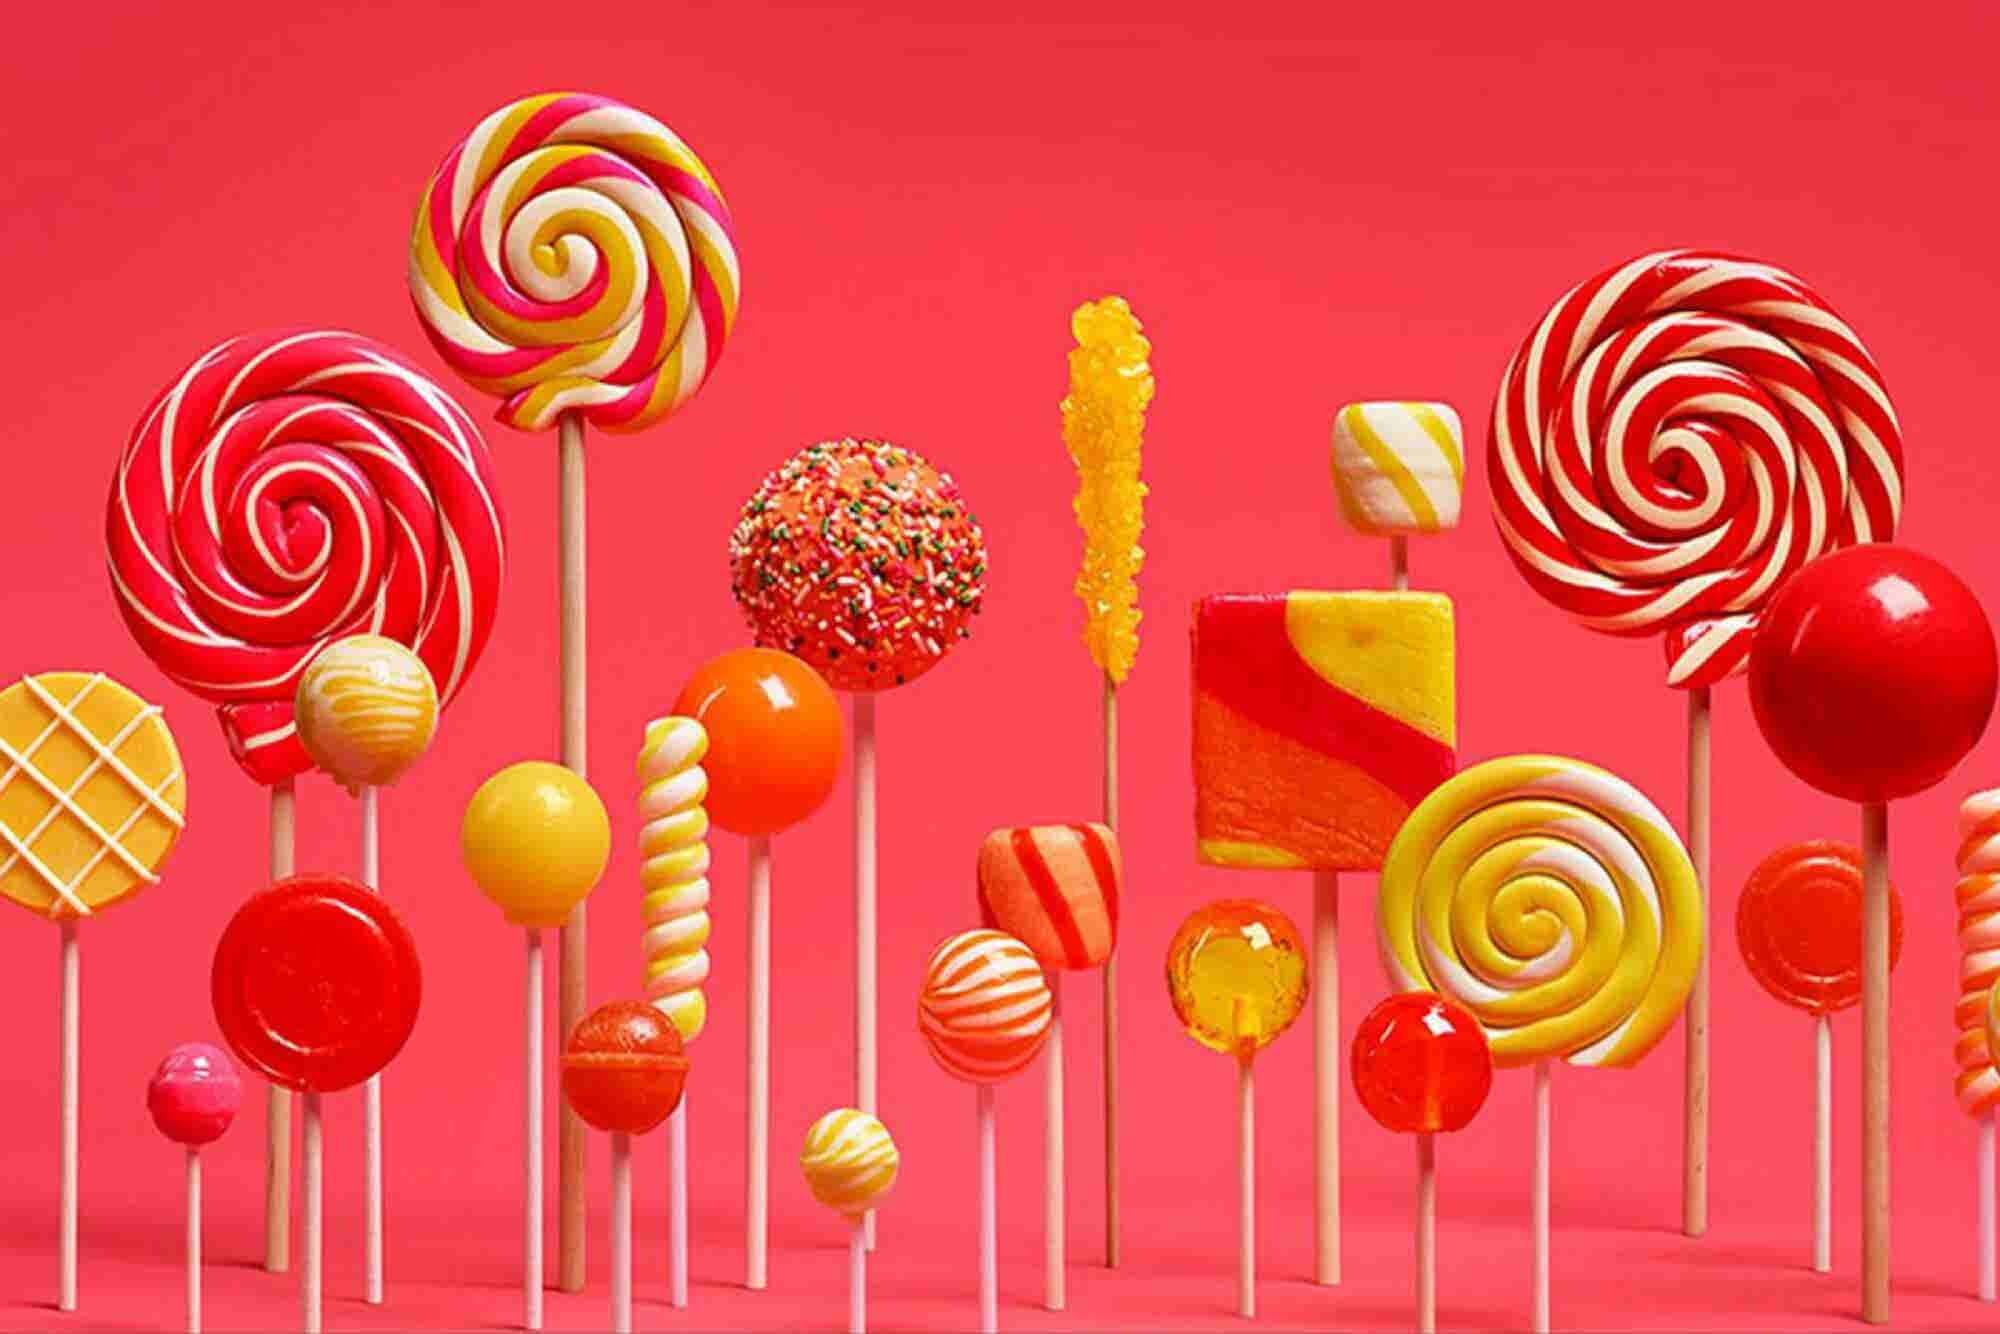 Android 5.0 Lollipop Has Some Tantalizing Features